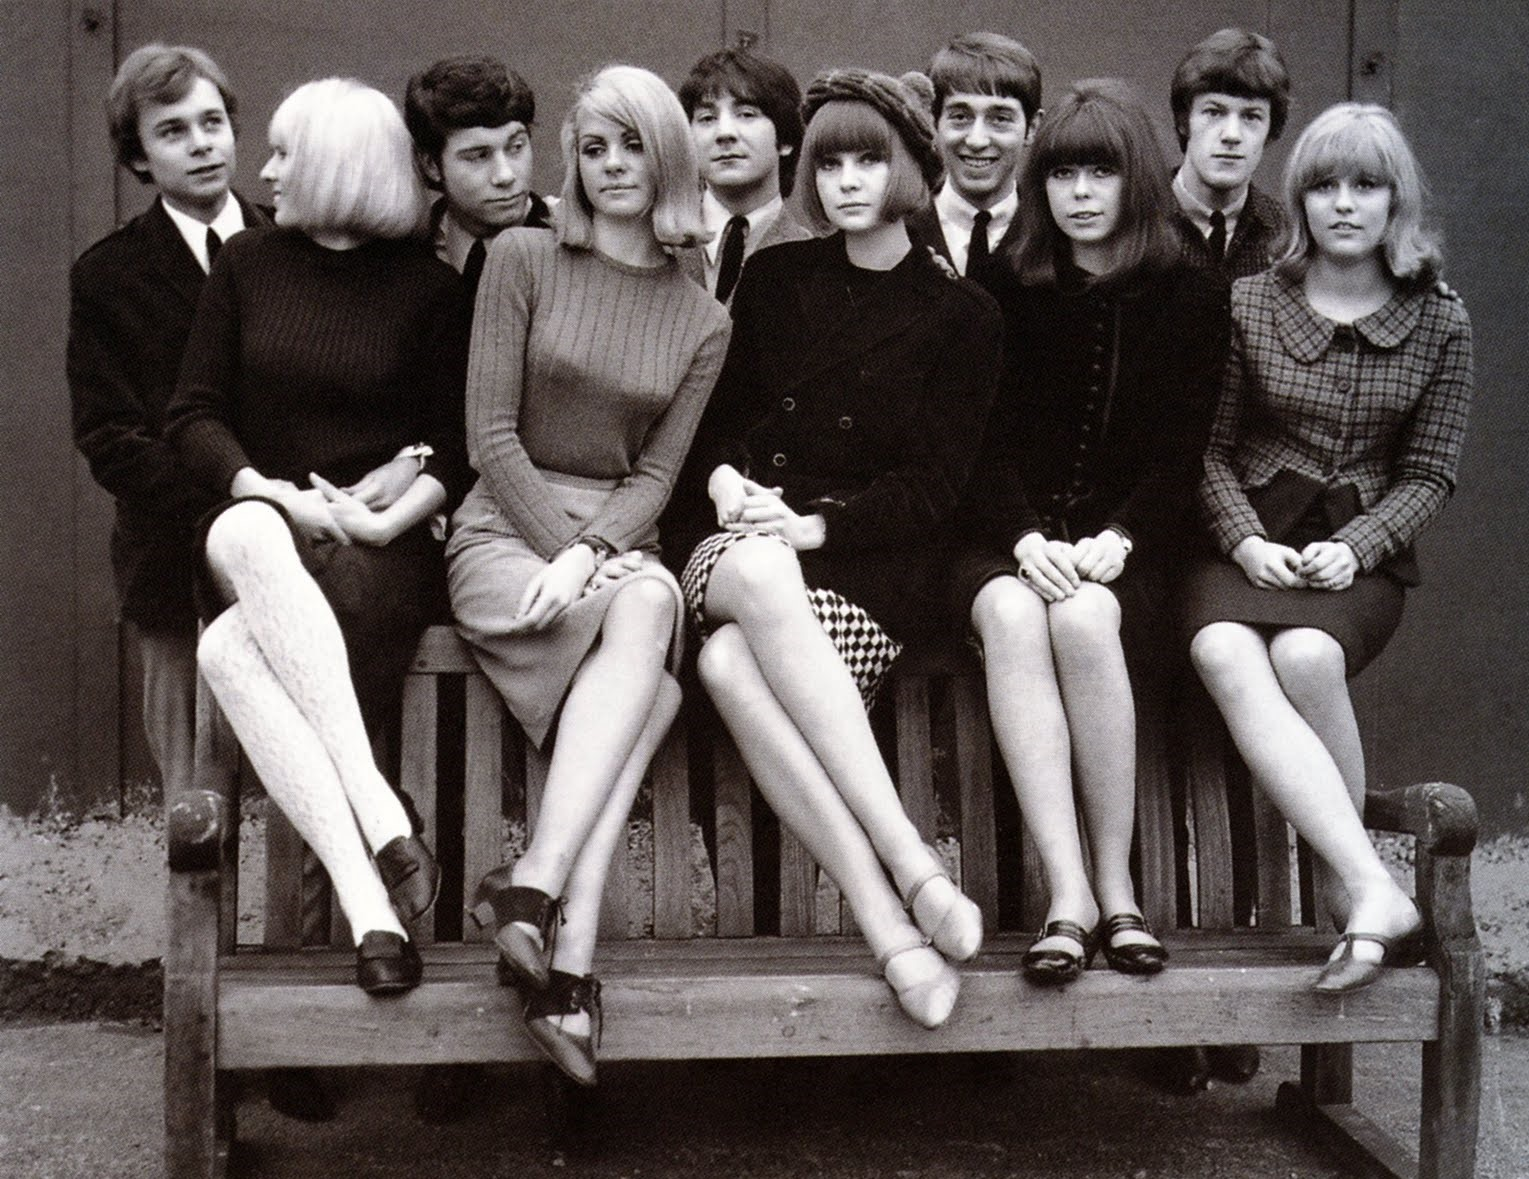 A black and white photo of a group of Mod boys and girls